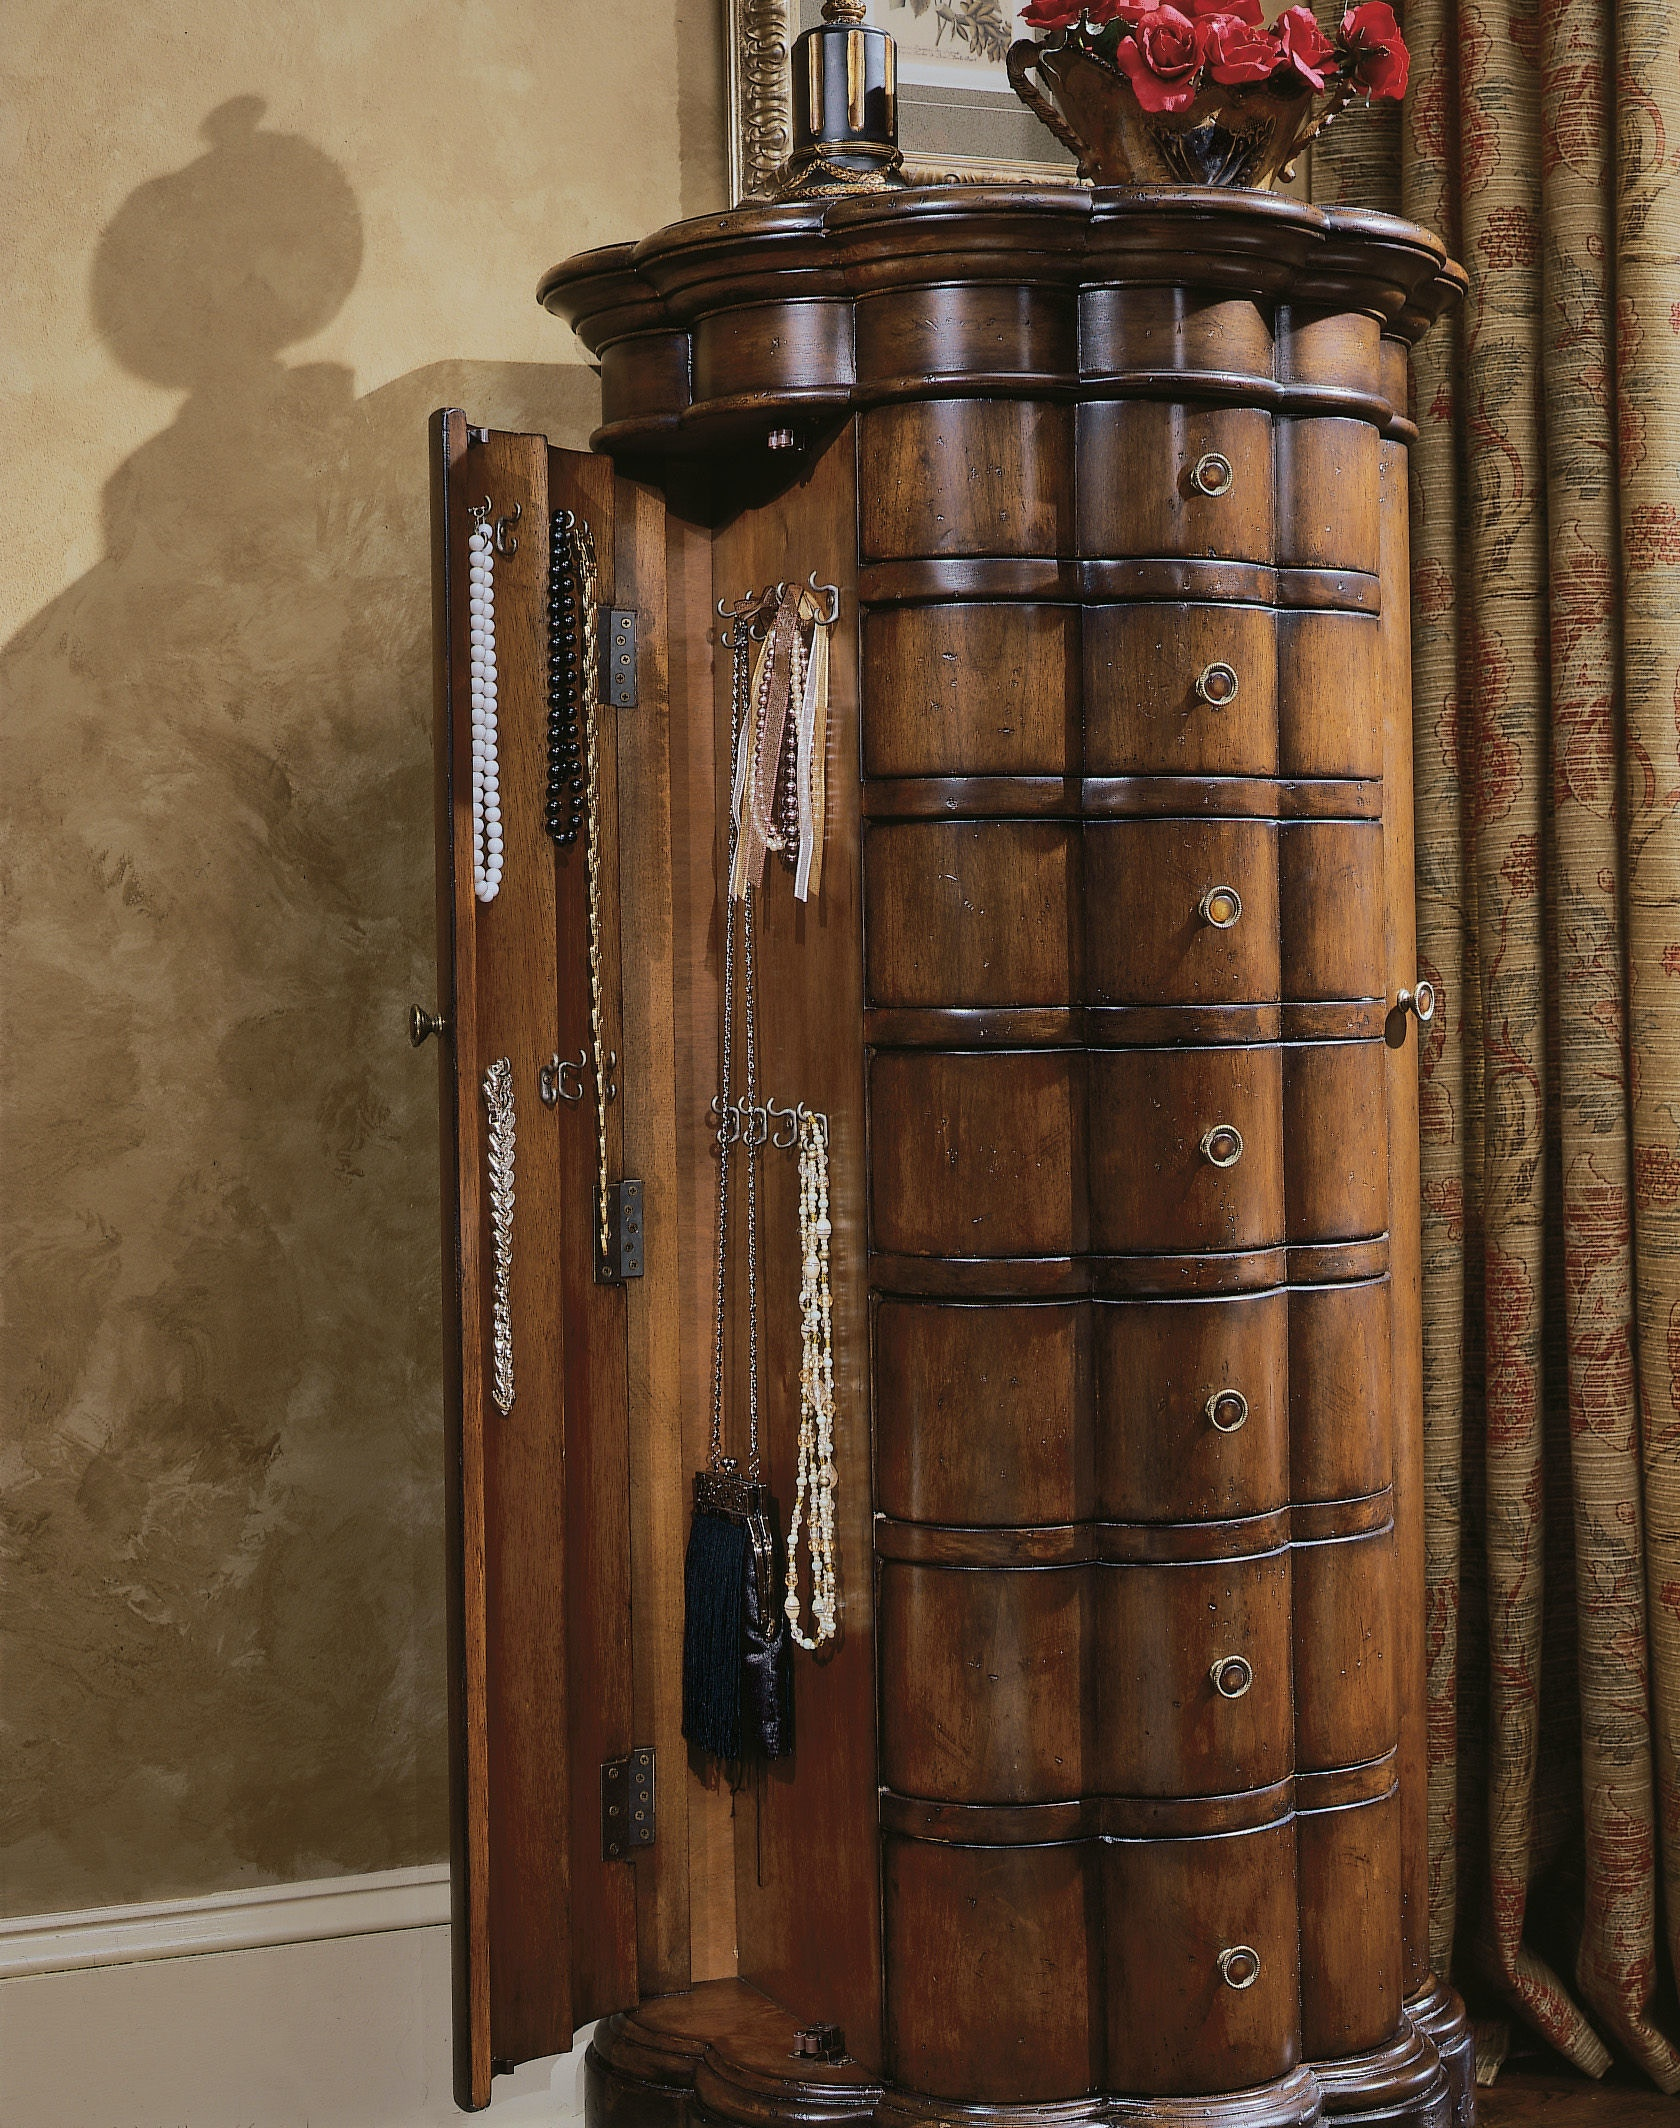 Hooker Furniture Shaped Jewelry Armoire Cherry 500 50 540